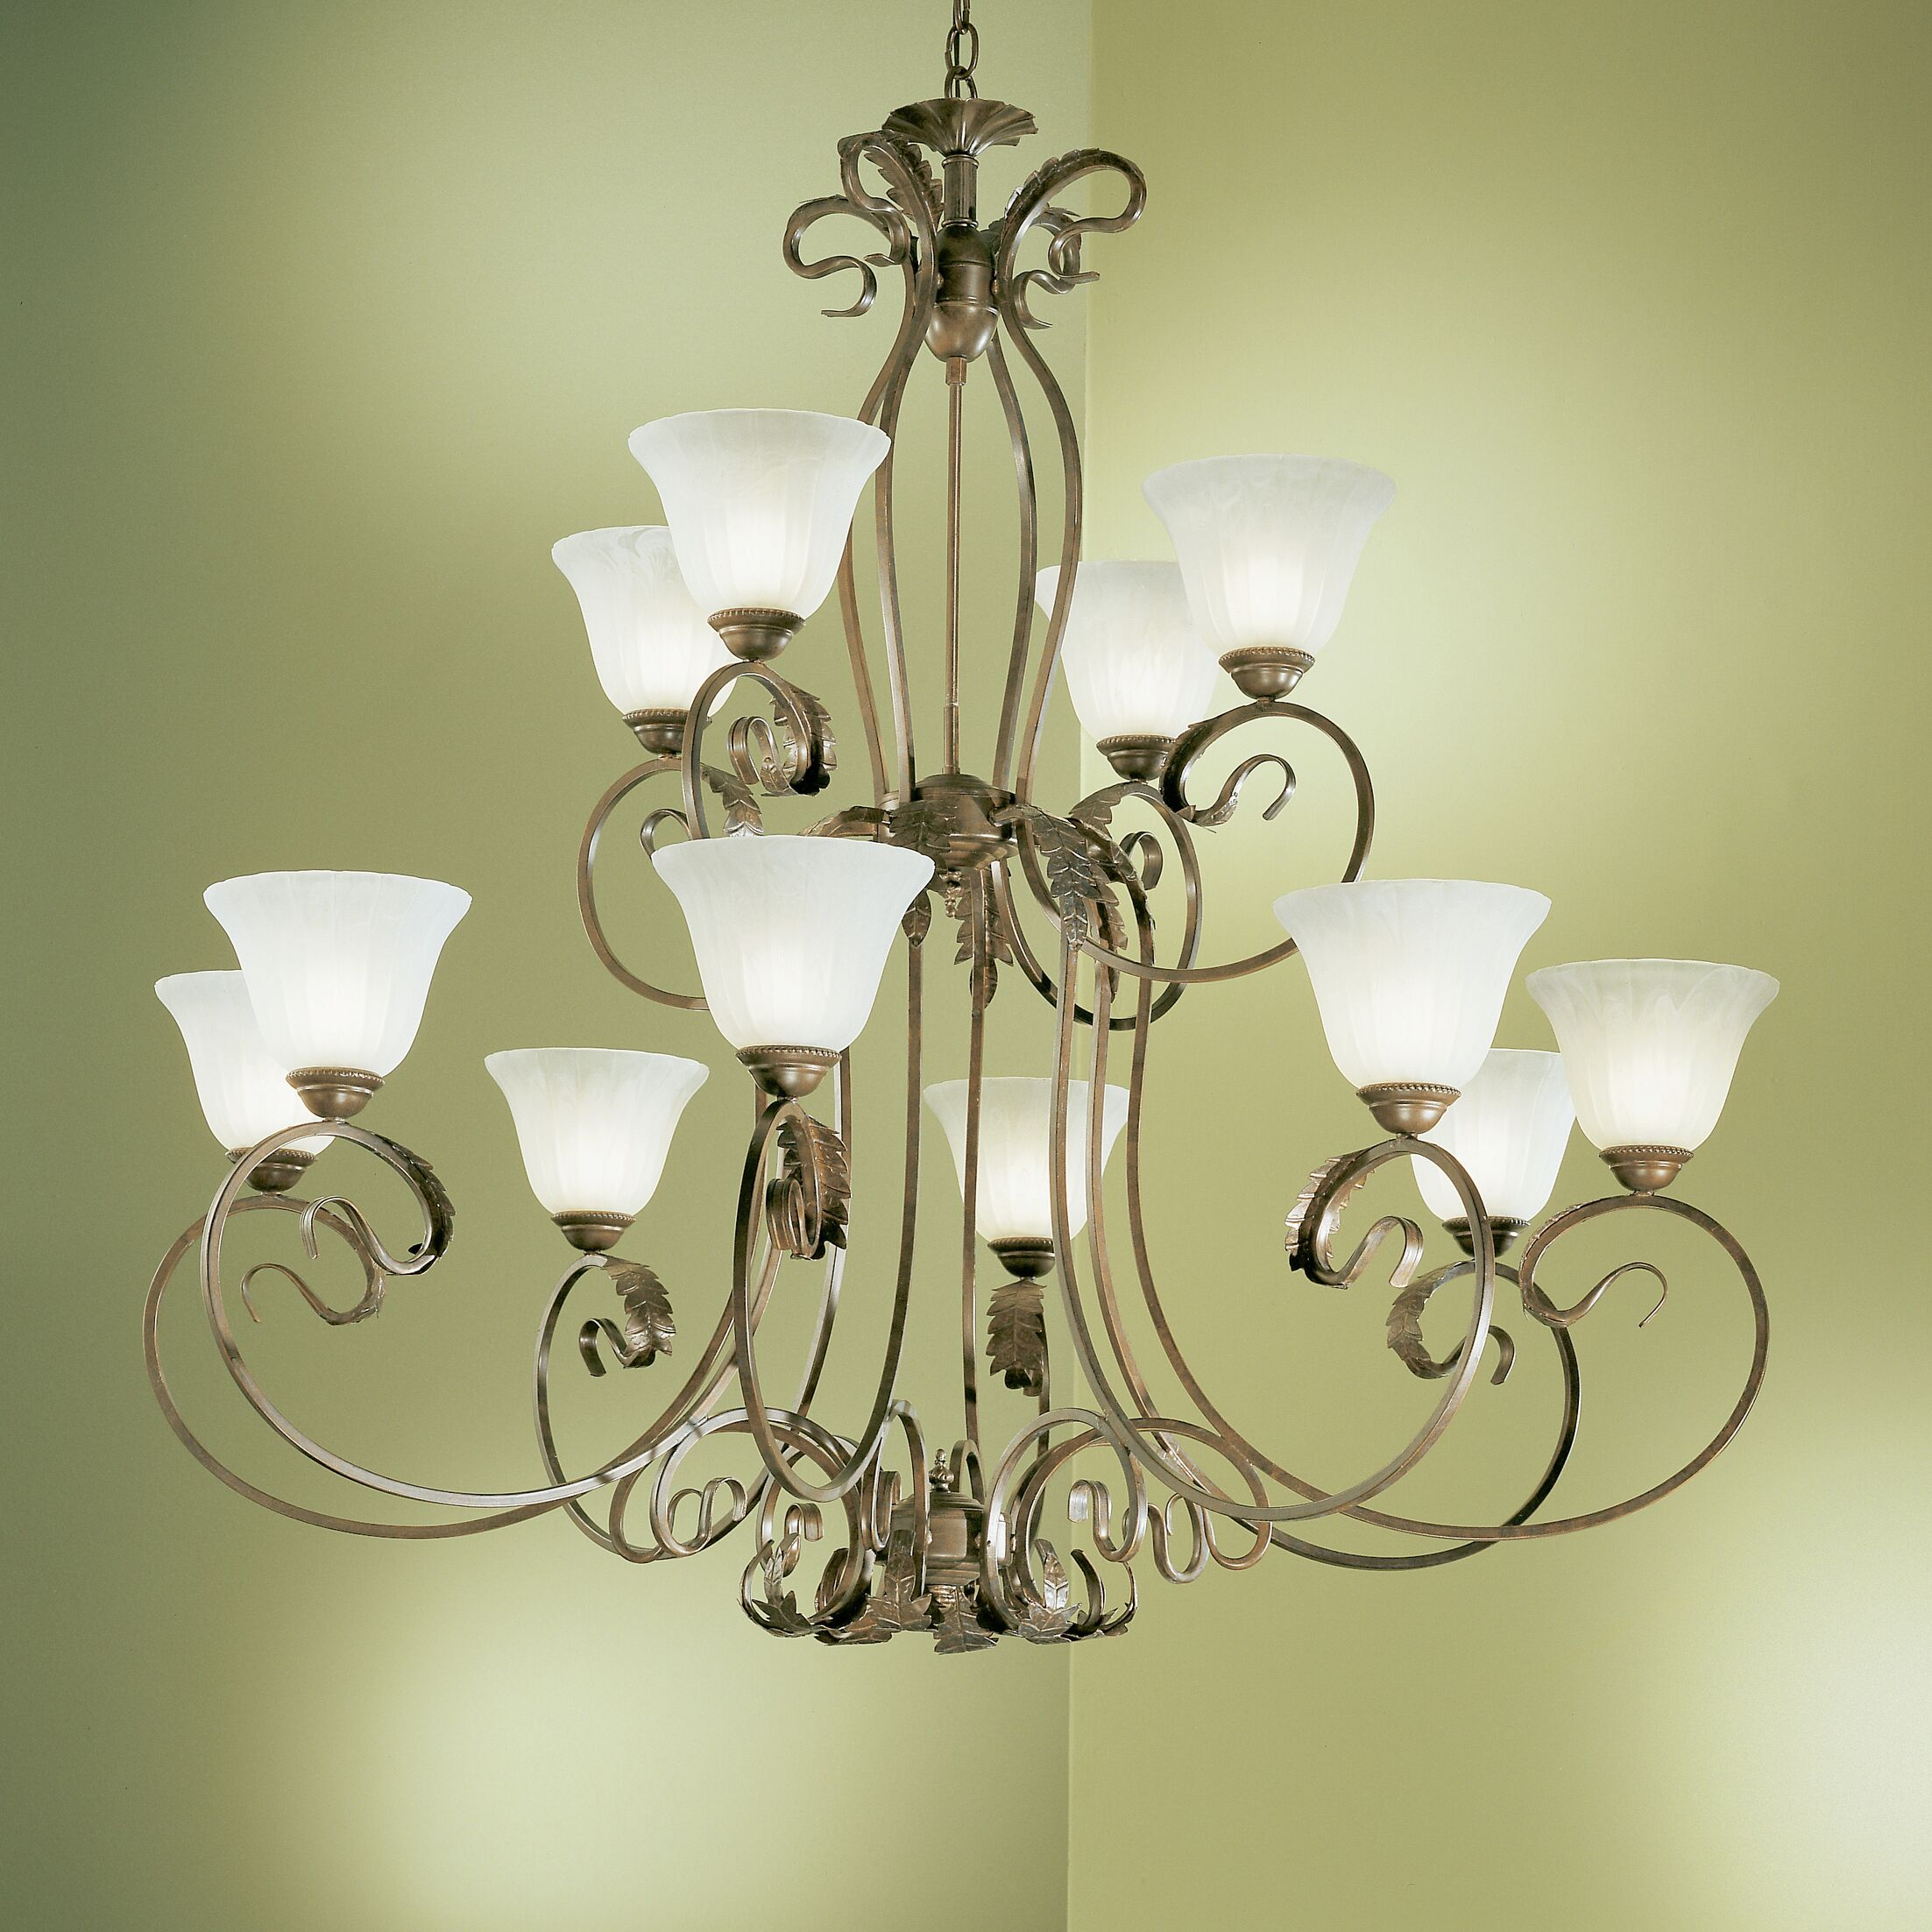 Manilla 12-Light Shaded Chandelier Finish: English Bronze, Glass Color: White Alabaster Glass